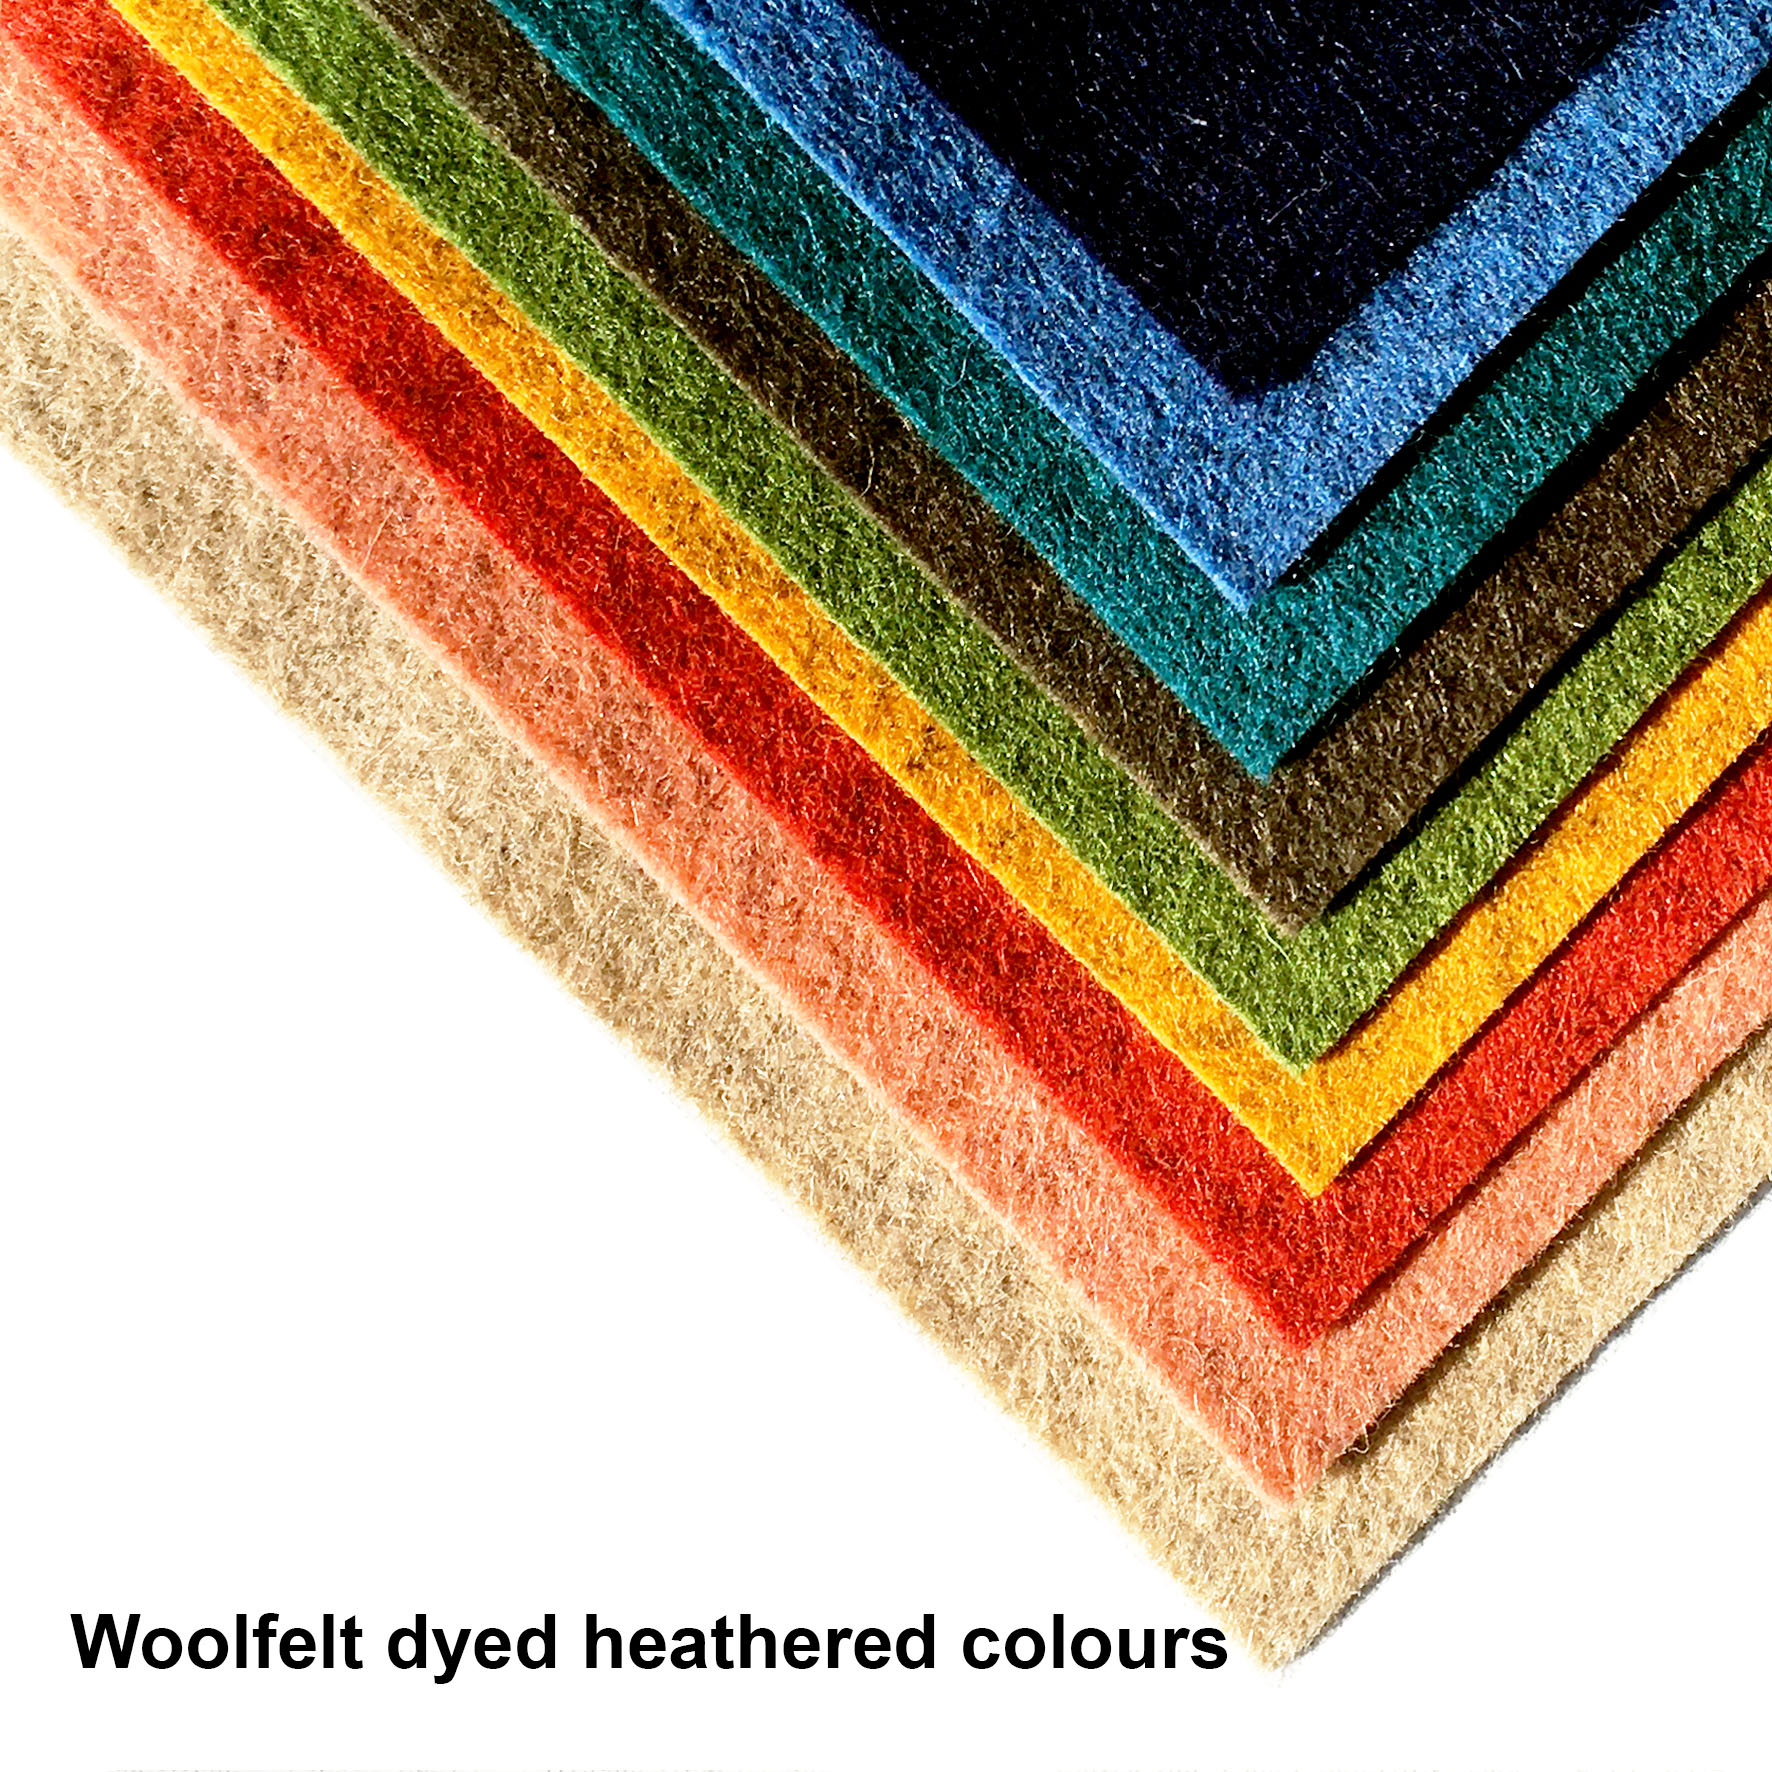 Woolfelt dyed heathered colours